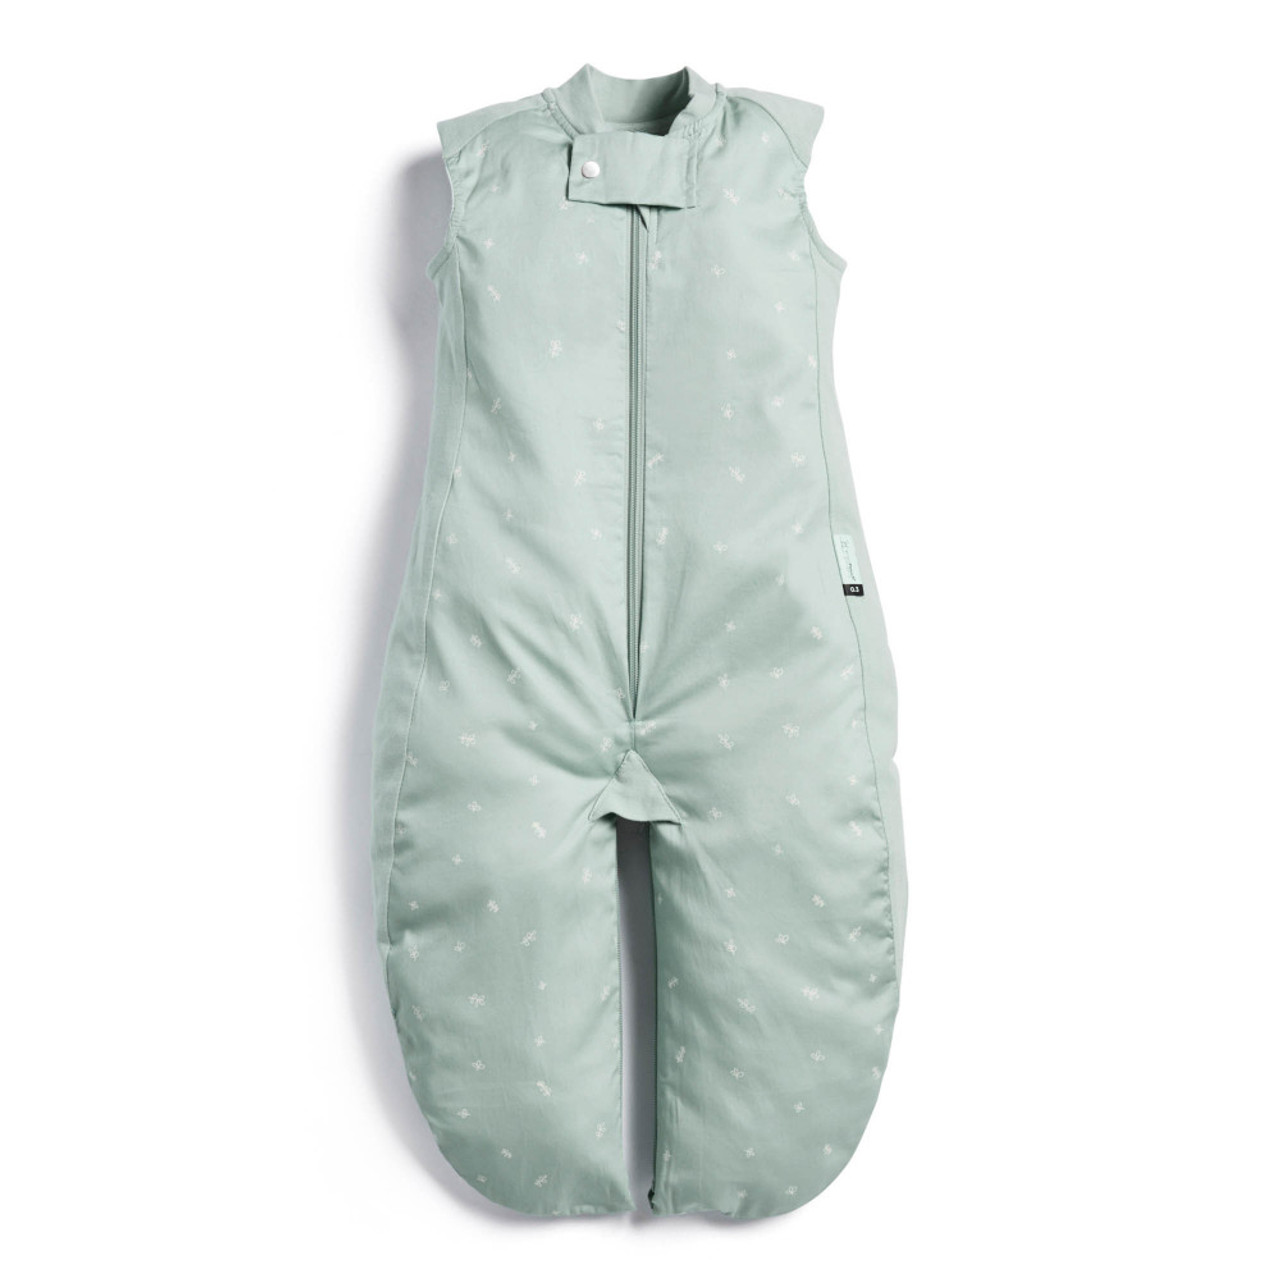 Ergopouch Sleep Suit Bag 0.3 Tog 8-24 Months SAGE at Baby Barn Discounts